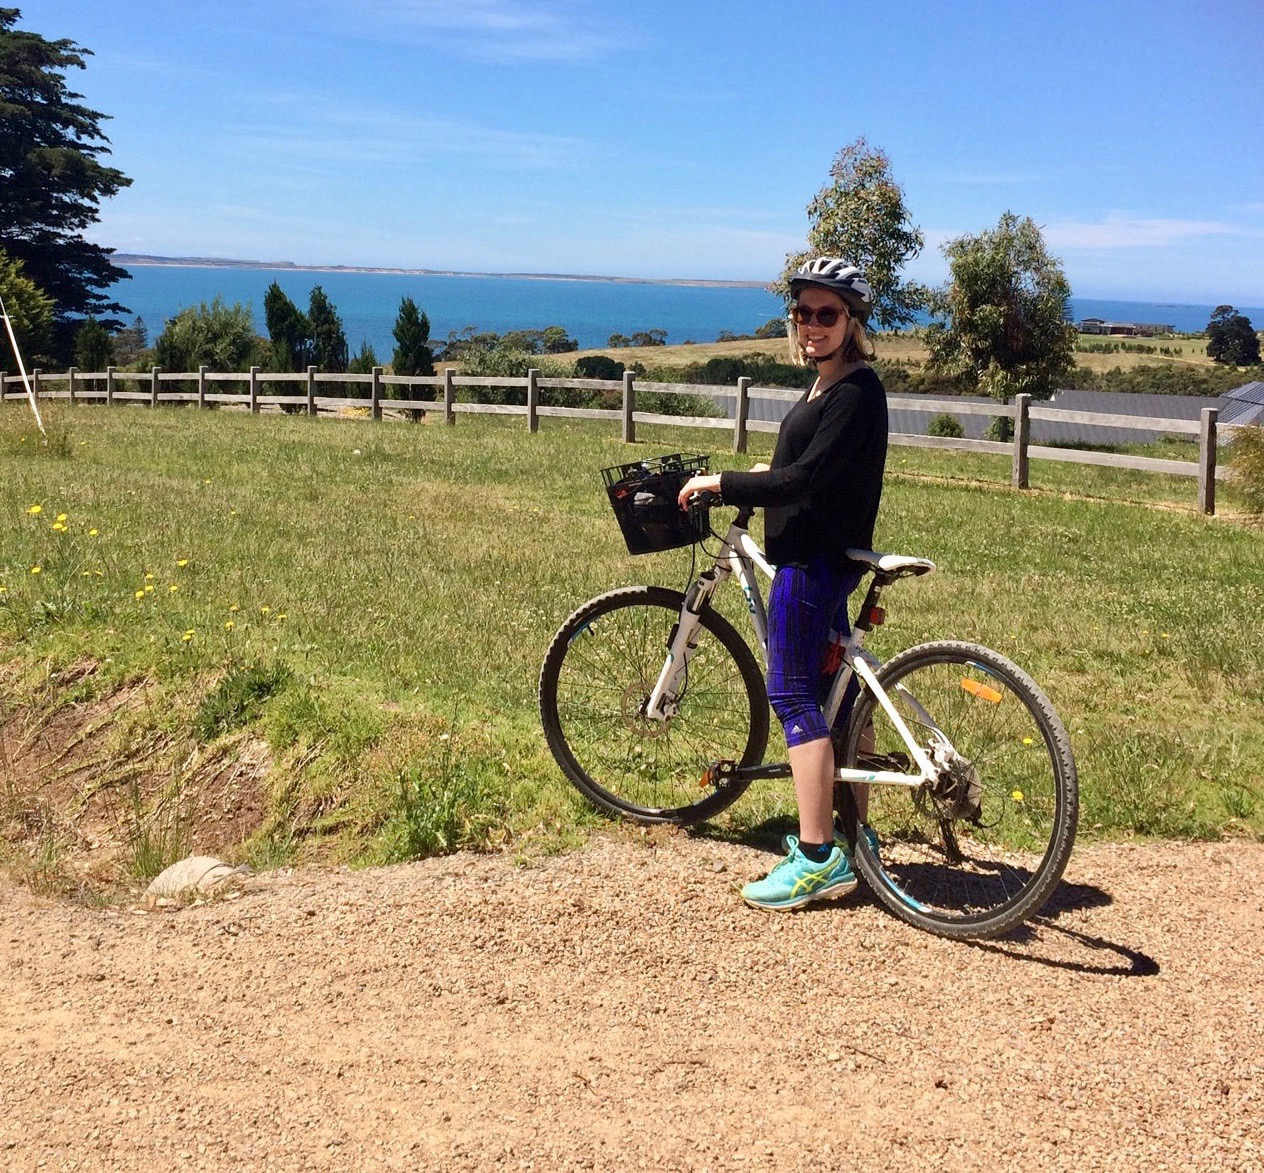 Guided One Day Gourmet Cycle Tour - Mornington Peninsula